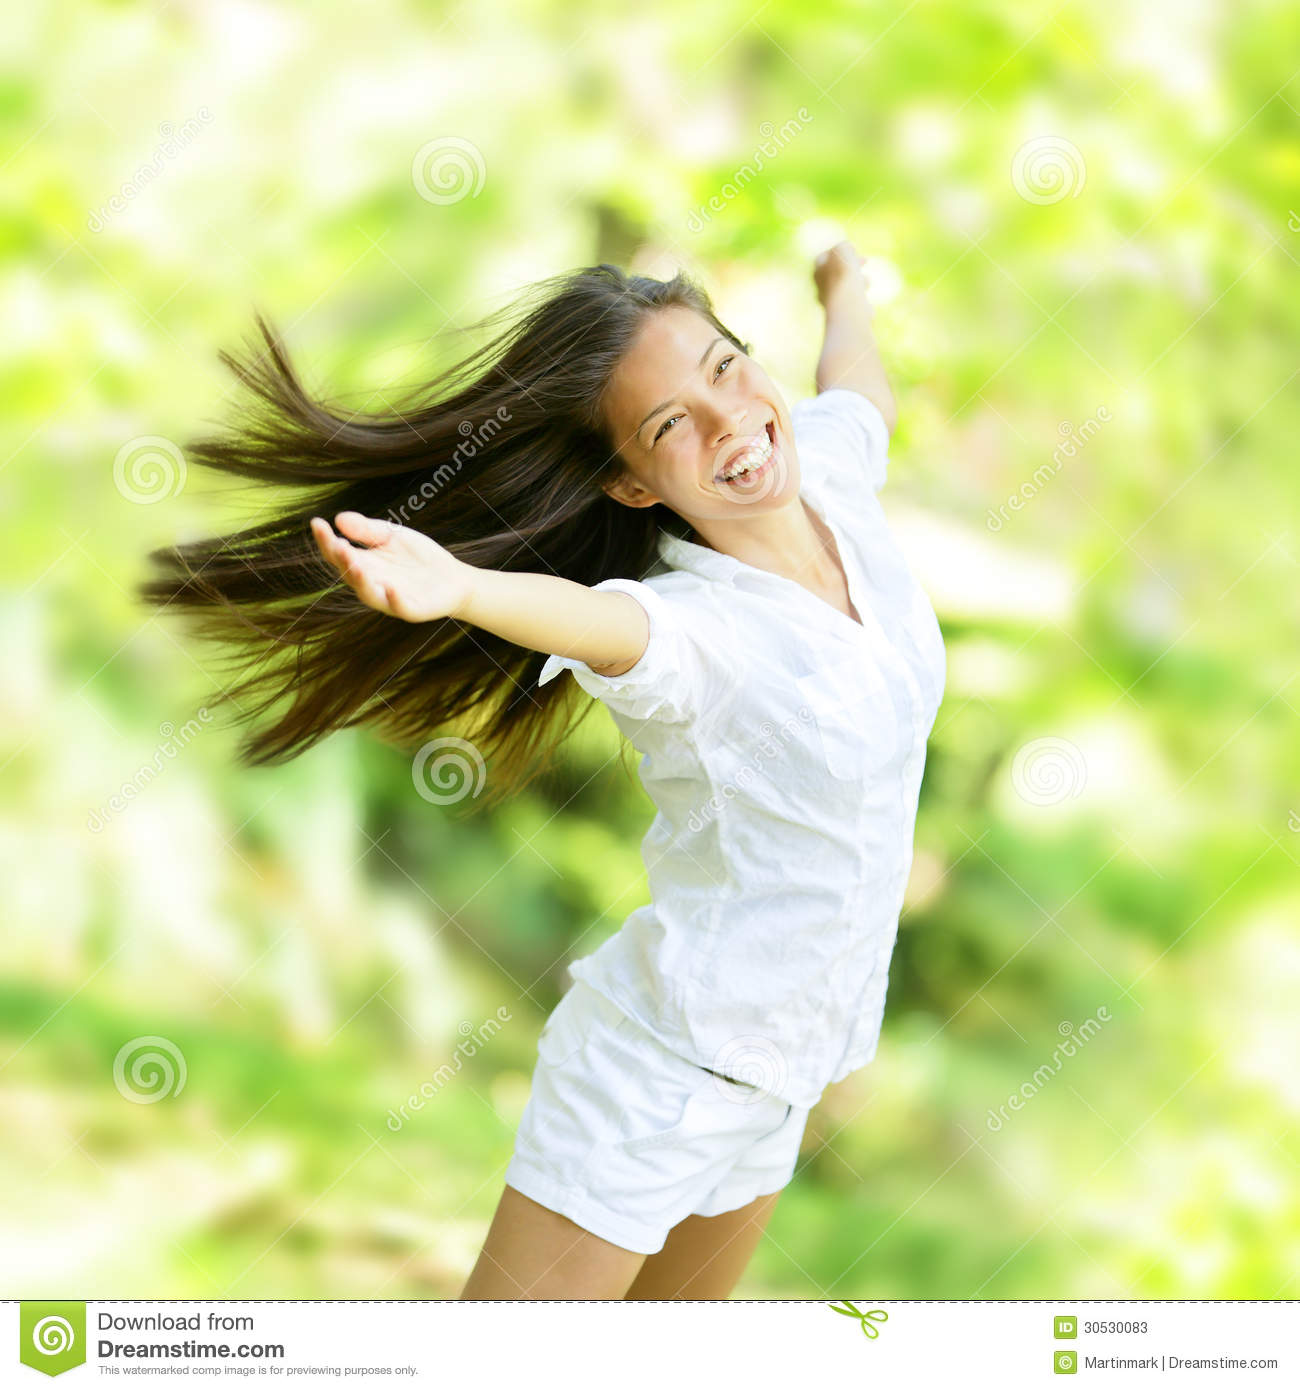 Rejoicing happy woman in flying motion